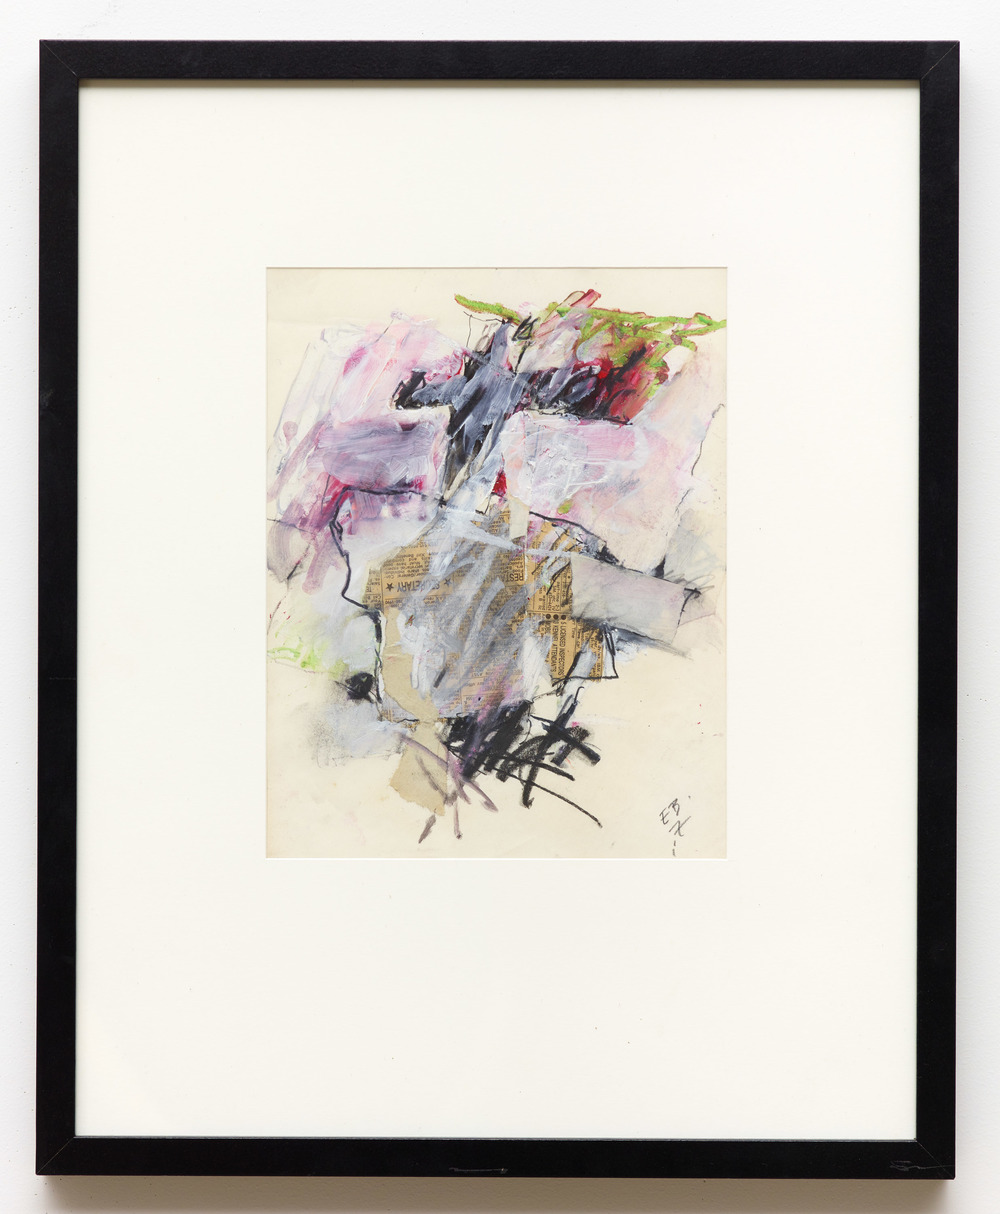 Ed Bereal, Untitled Abstract, 1963